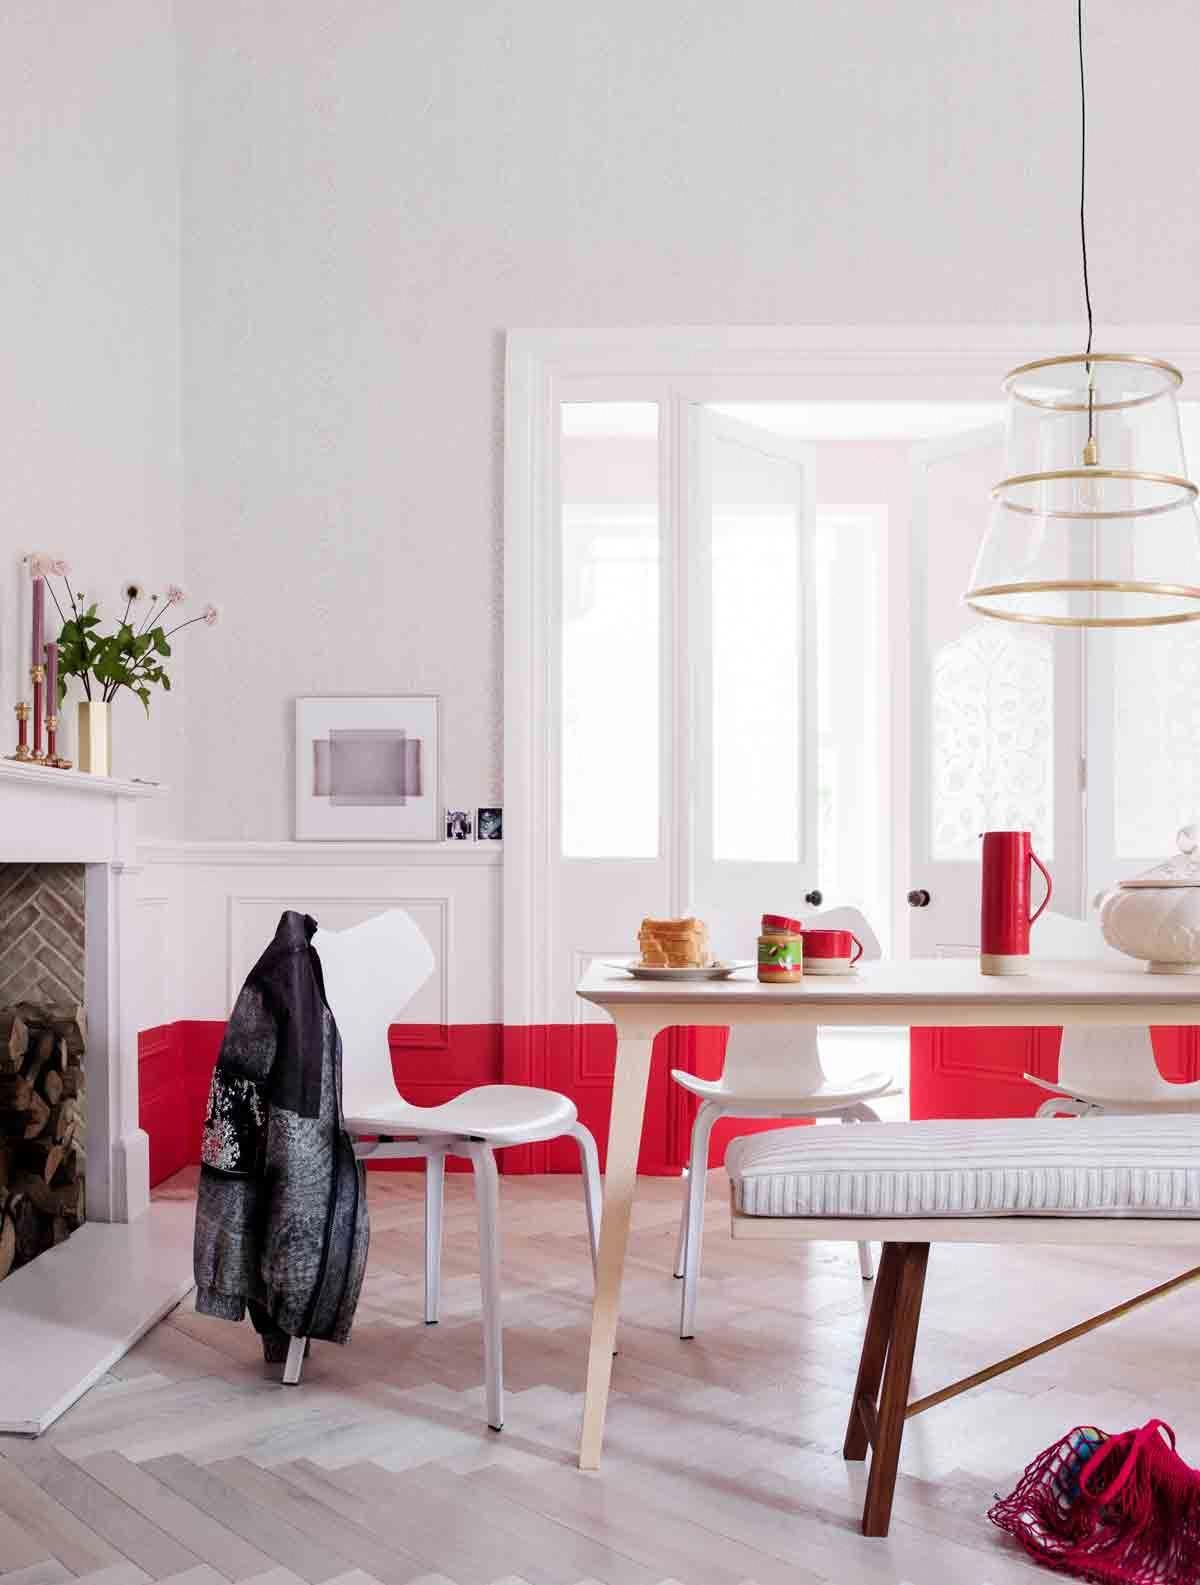 Interior design trend decorating with red interiorxc also rh pinterest